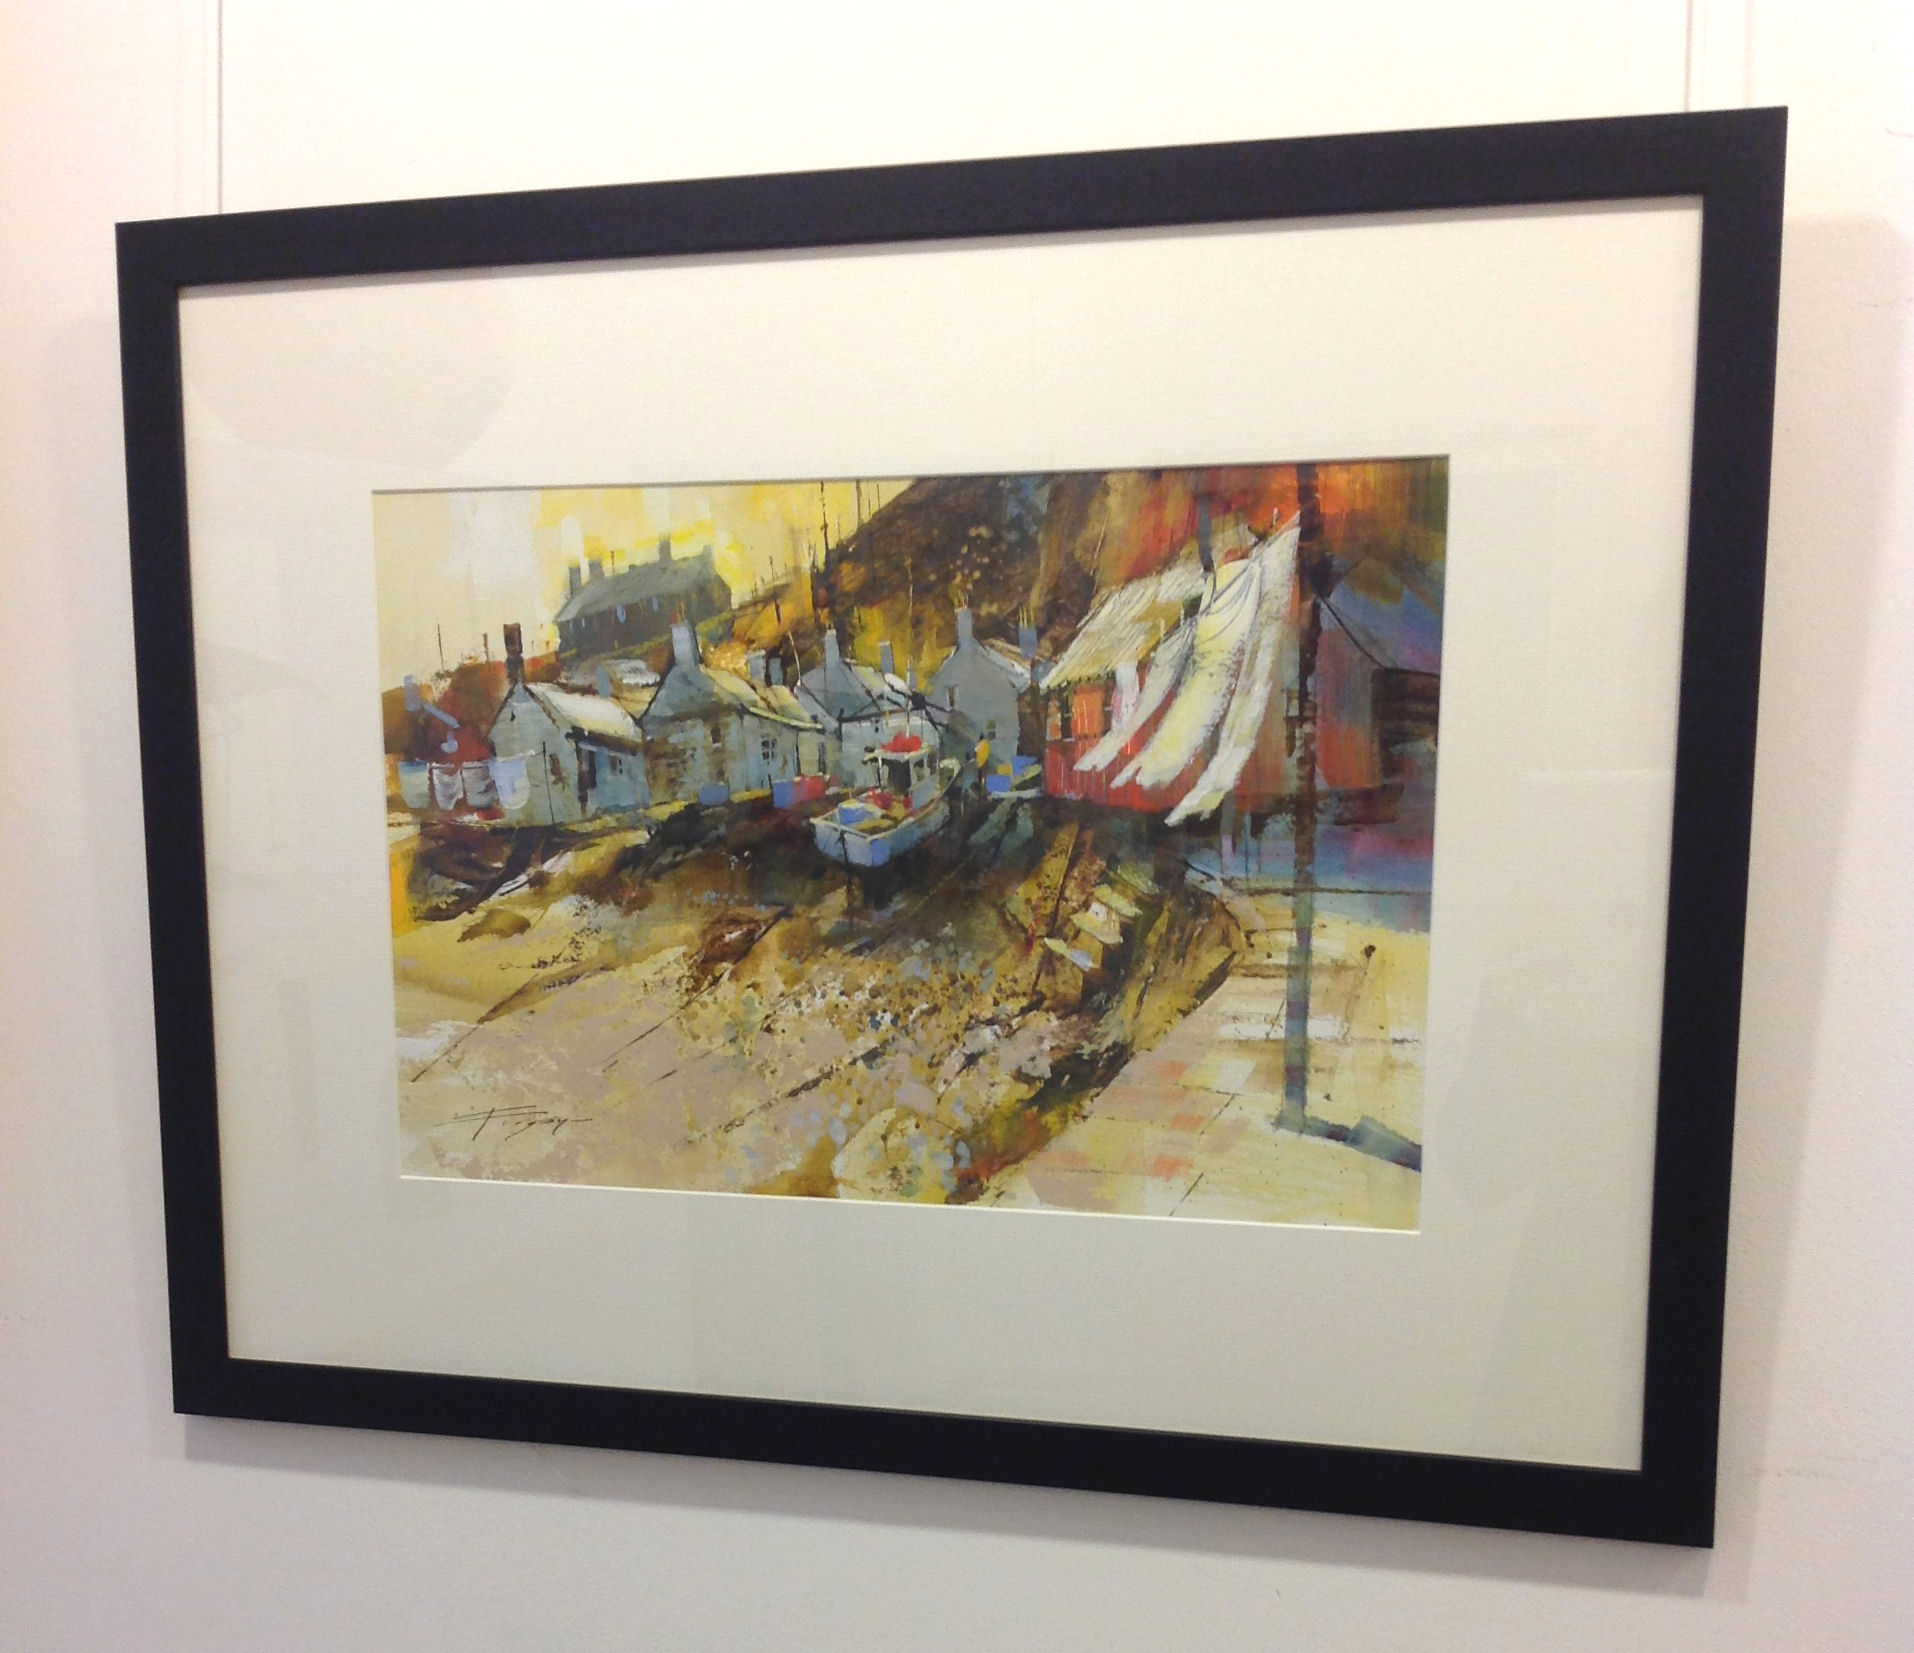 'Blowing in the Sun, Sandend' by artist Chris Forsey